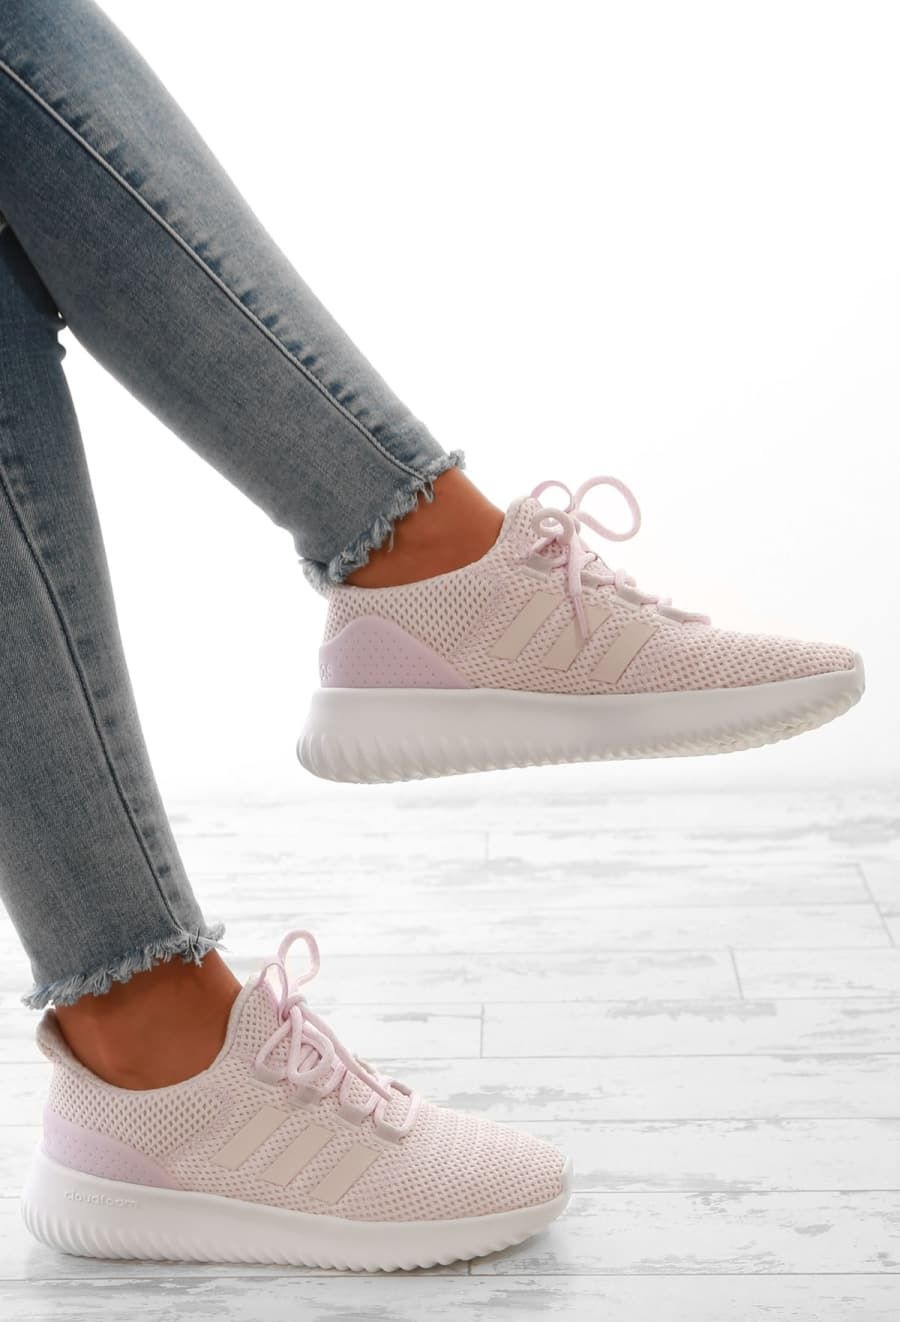 350d315aa Adidas Pink Cloudfoam Ultimate Trainers - UK 3.5 | H | Pink adidas ...